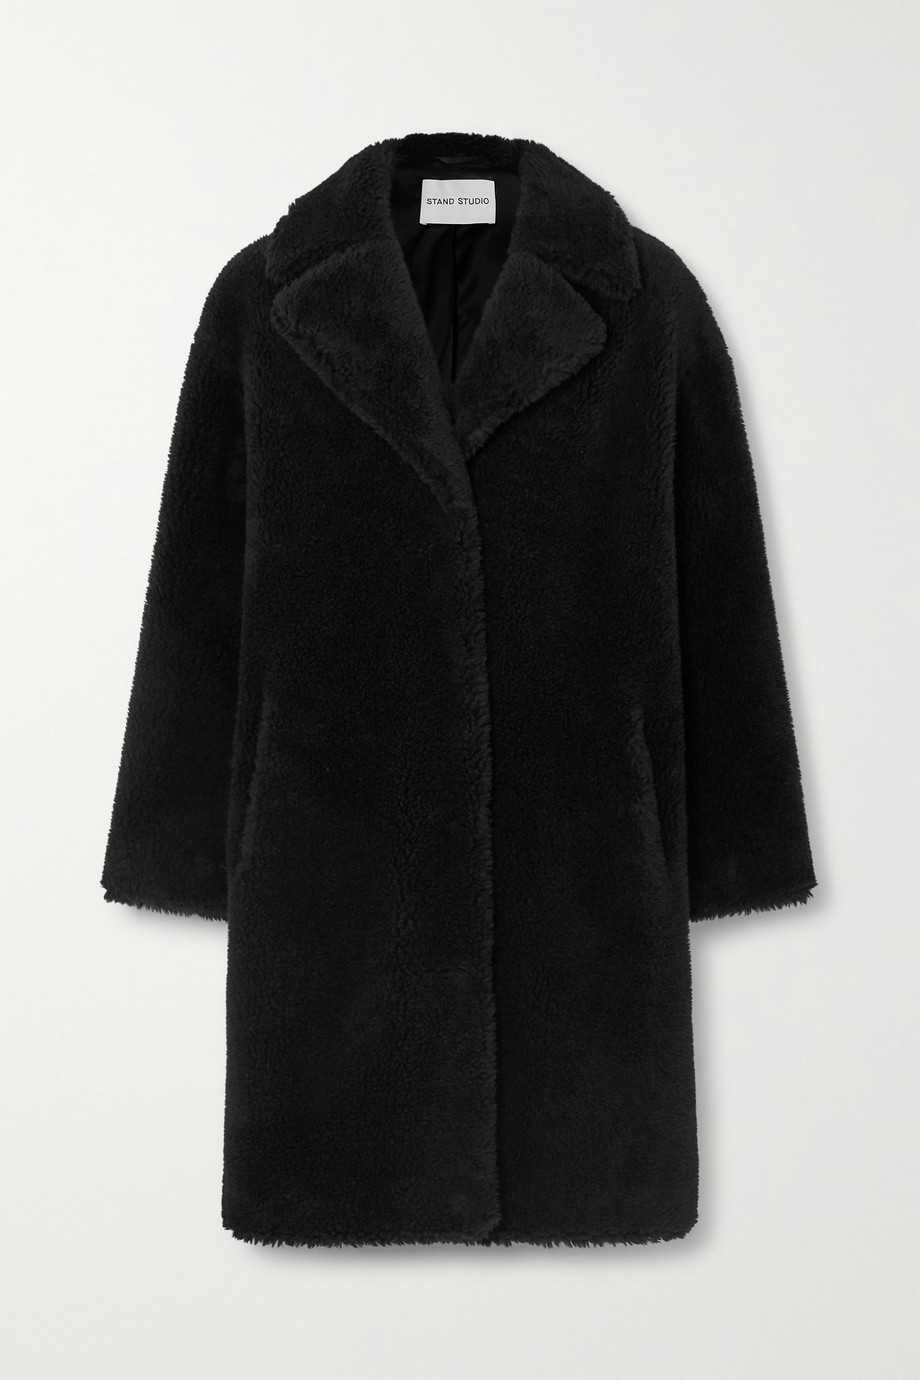 Stand Studio Camille Cocoon oversized faux shearling coat